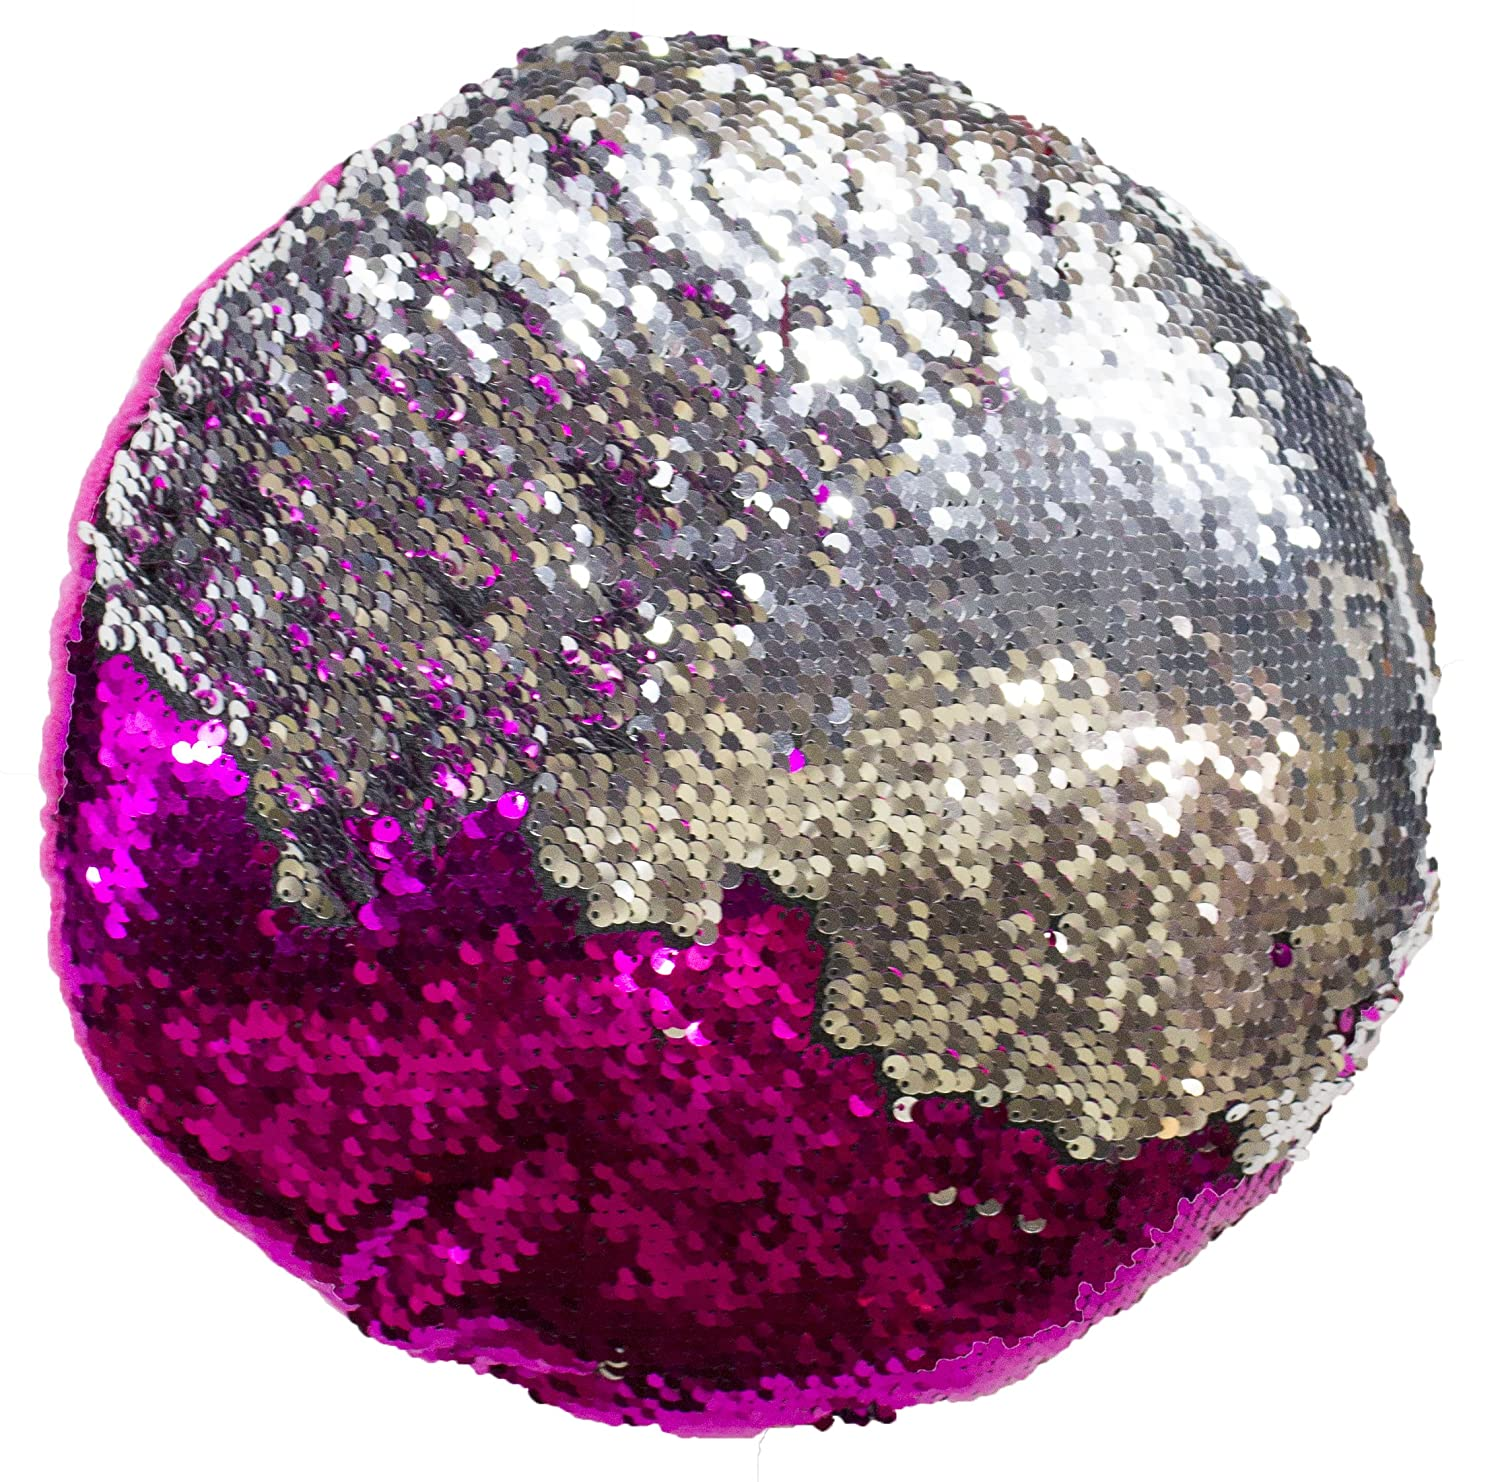 12 Inch Color Circle Shaped Color Changing Sequin Pillow (PinkSilver)